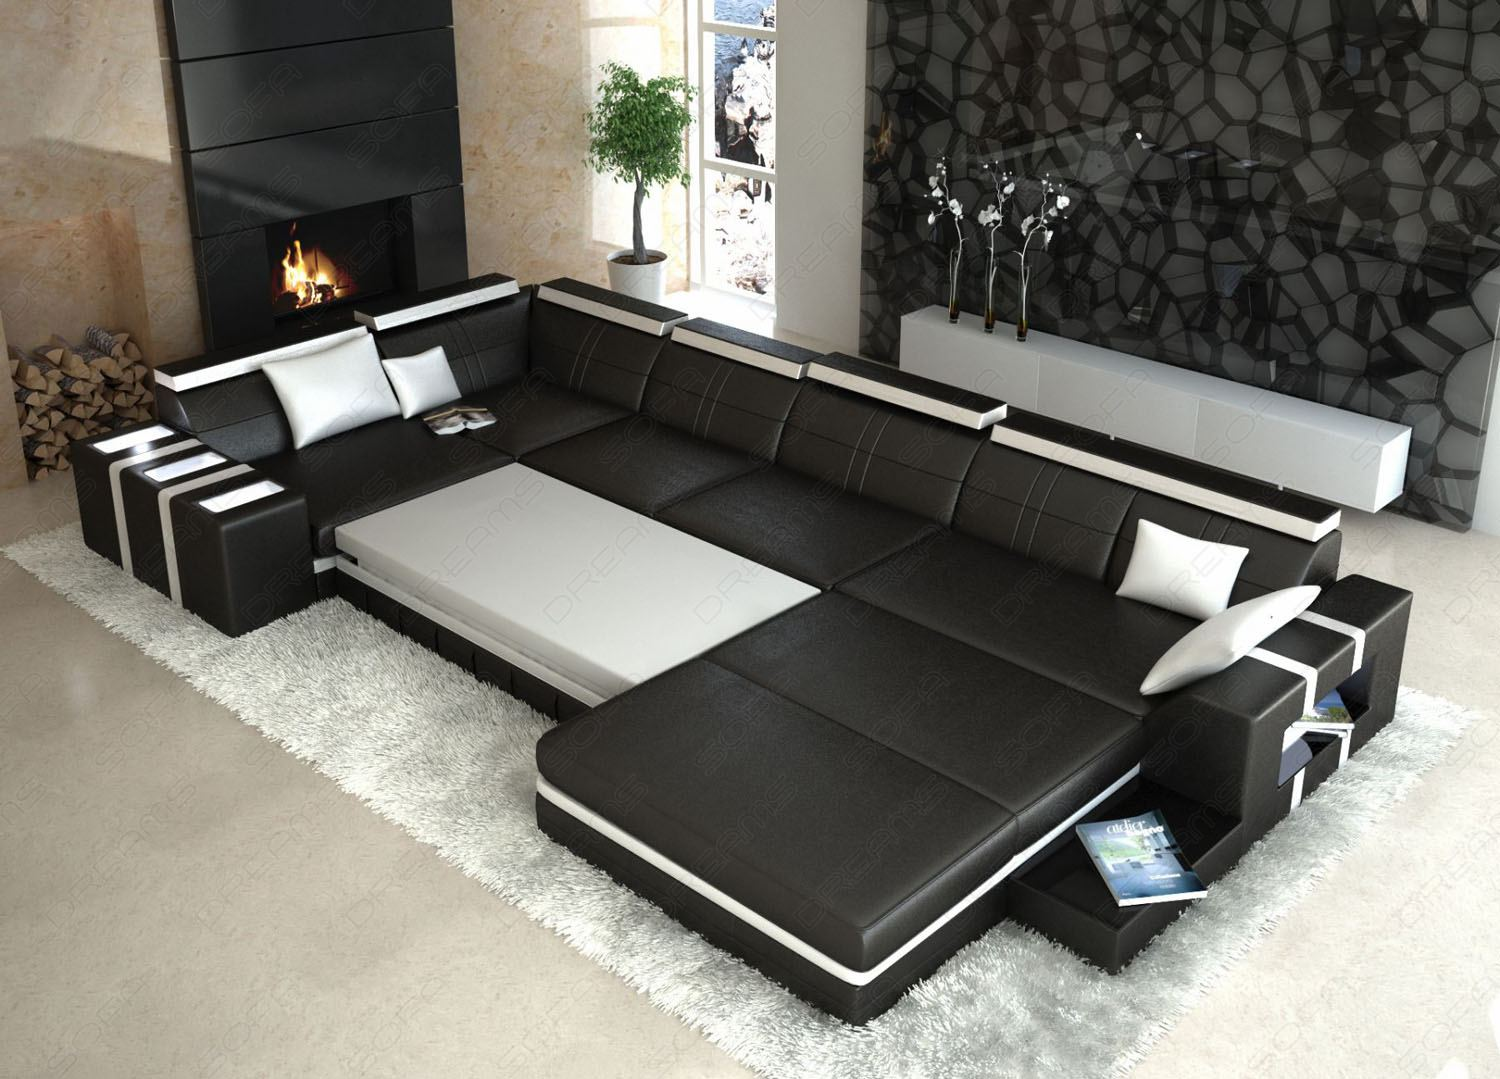 designer wohnlandschaft asti u form weiss schwarz ledersofa. Black Bedroom Furniture Sets. Home Design Ideas